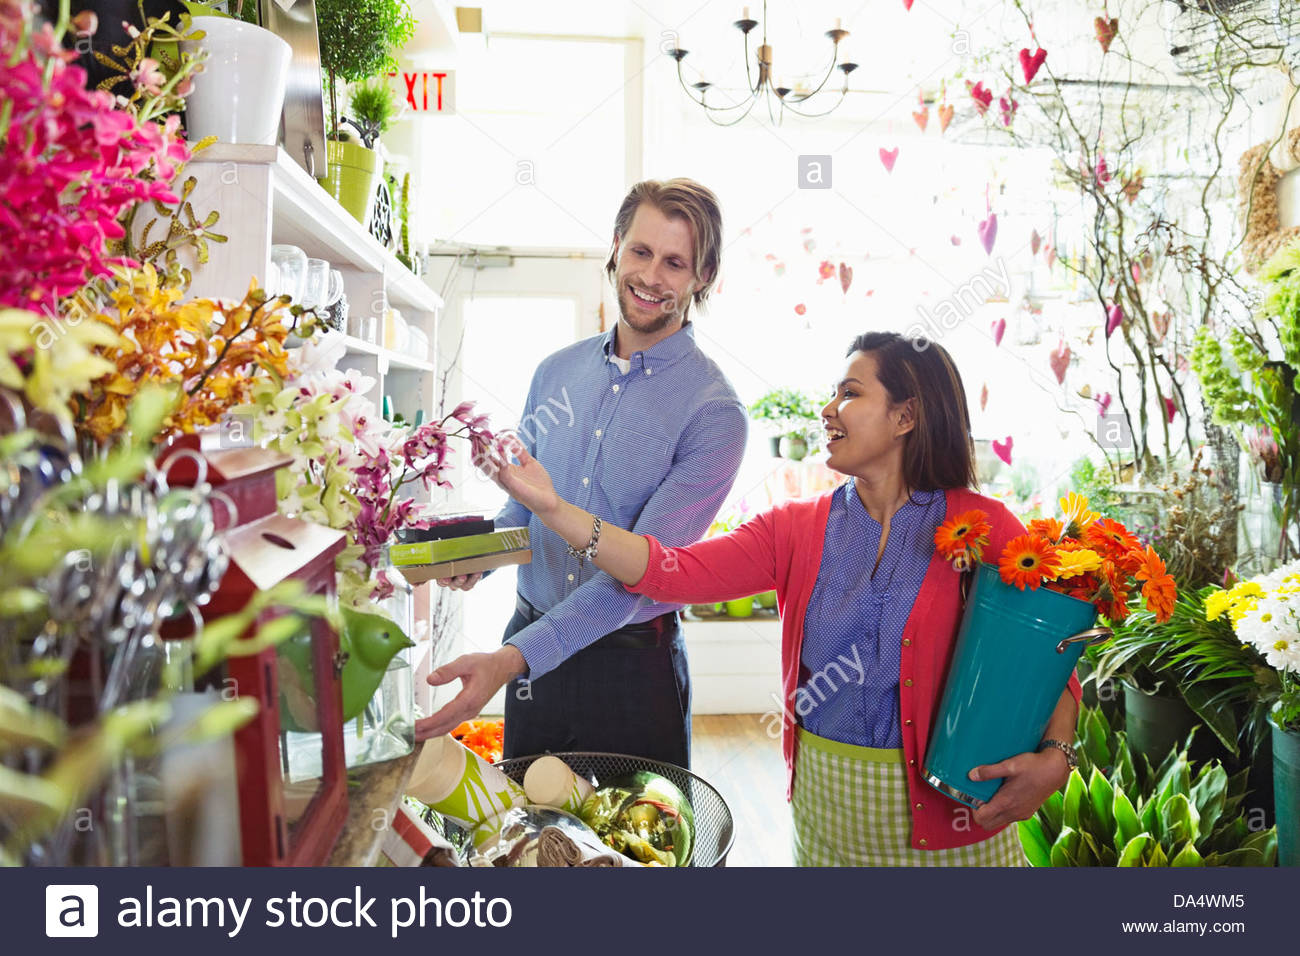 Female florist helping male customer in flower shop - Stock Image